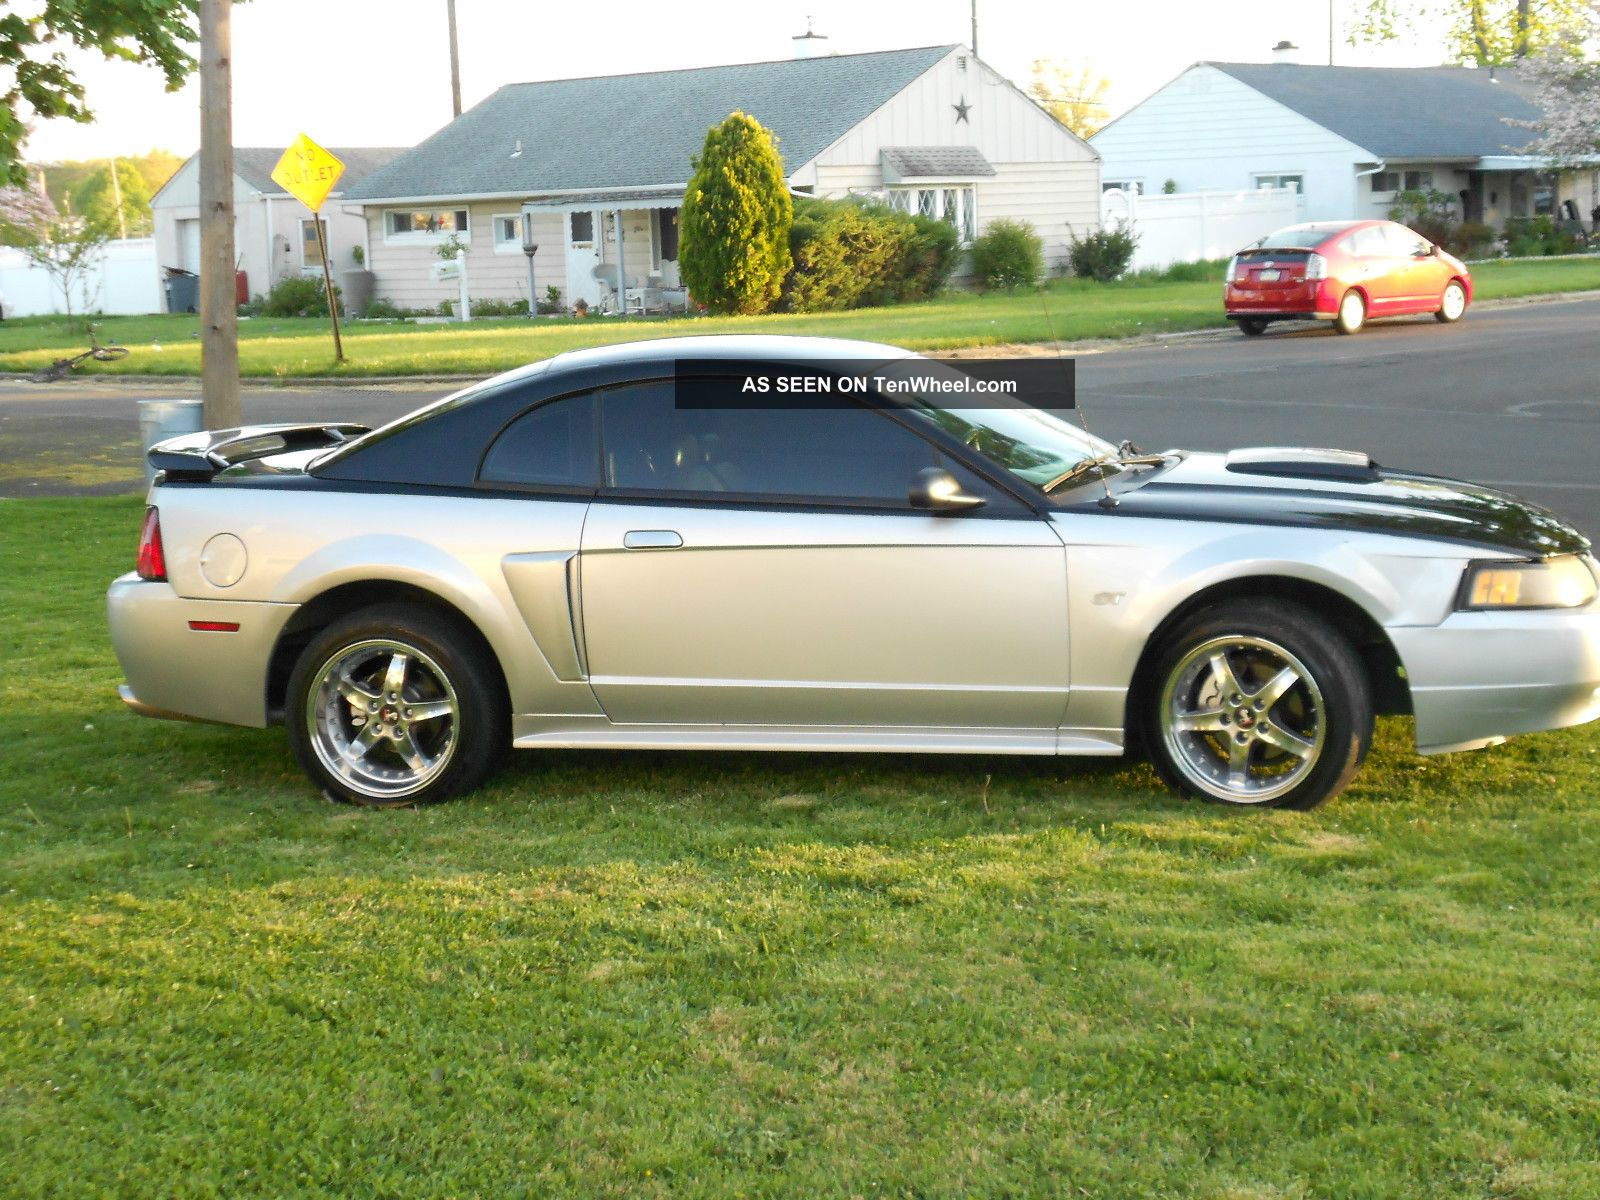 2002 ford mustang gt coupe 2 door 4 6l 2004 Chevrolet Monte Carlo 2008 Chevrolet Monte Carlo